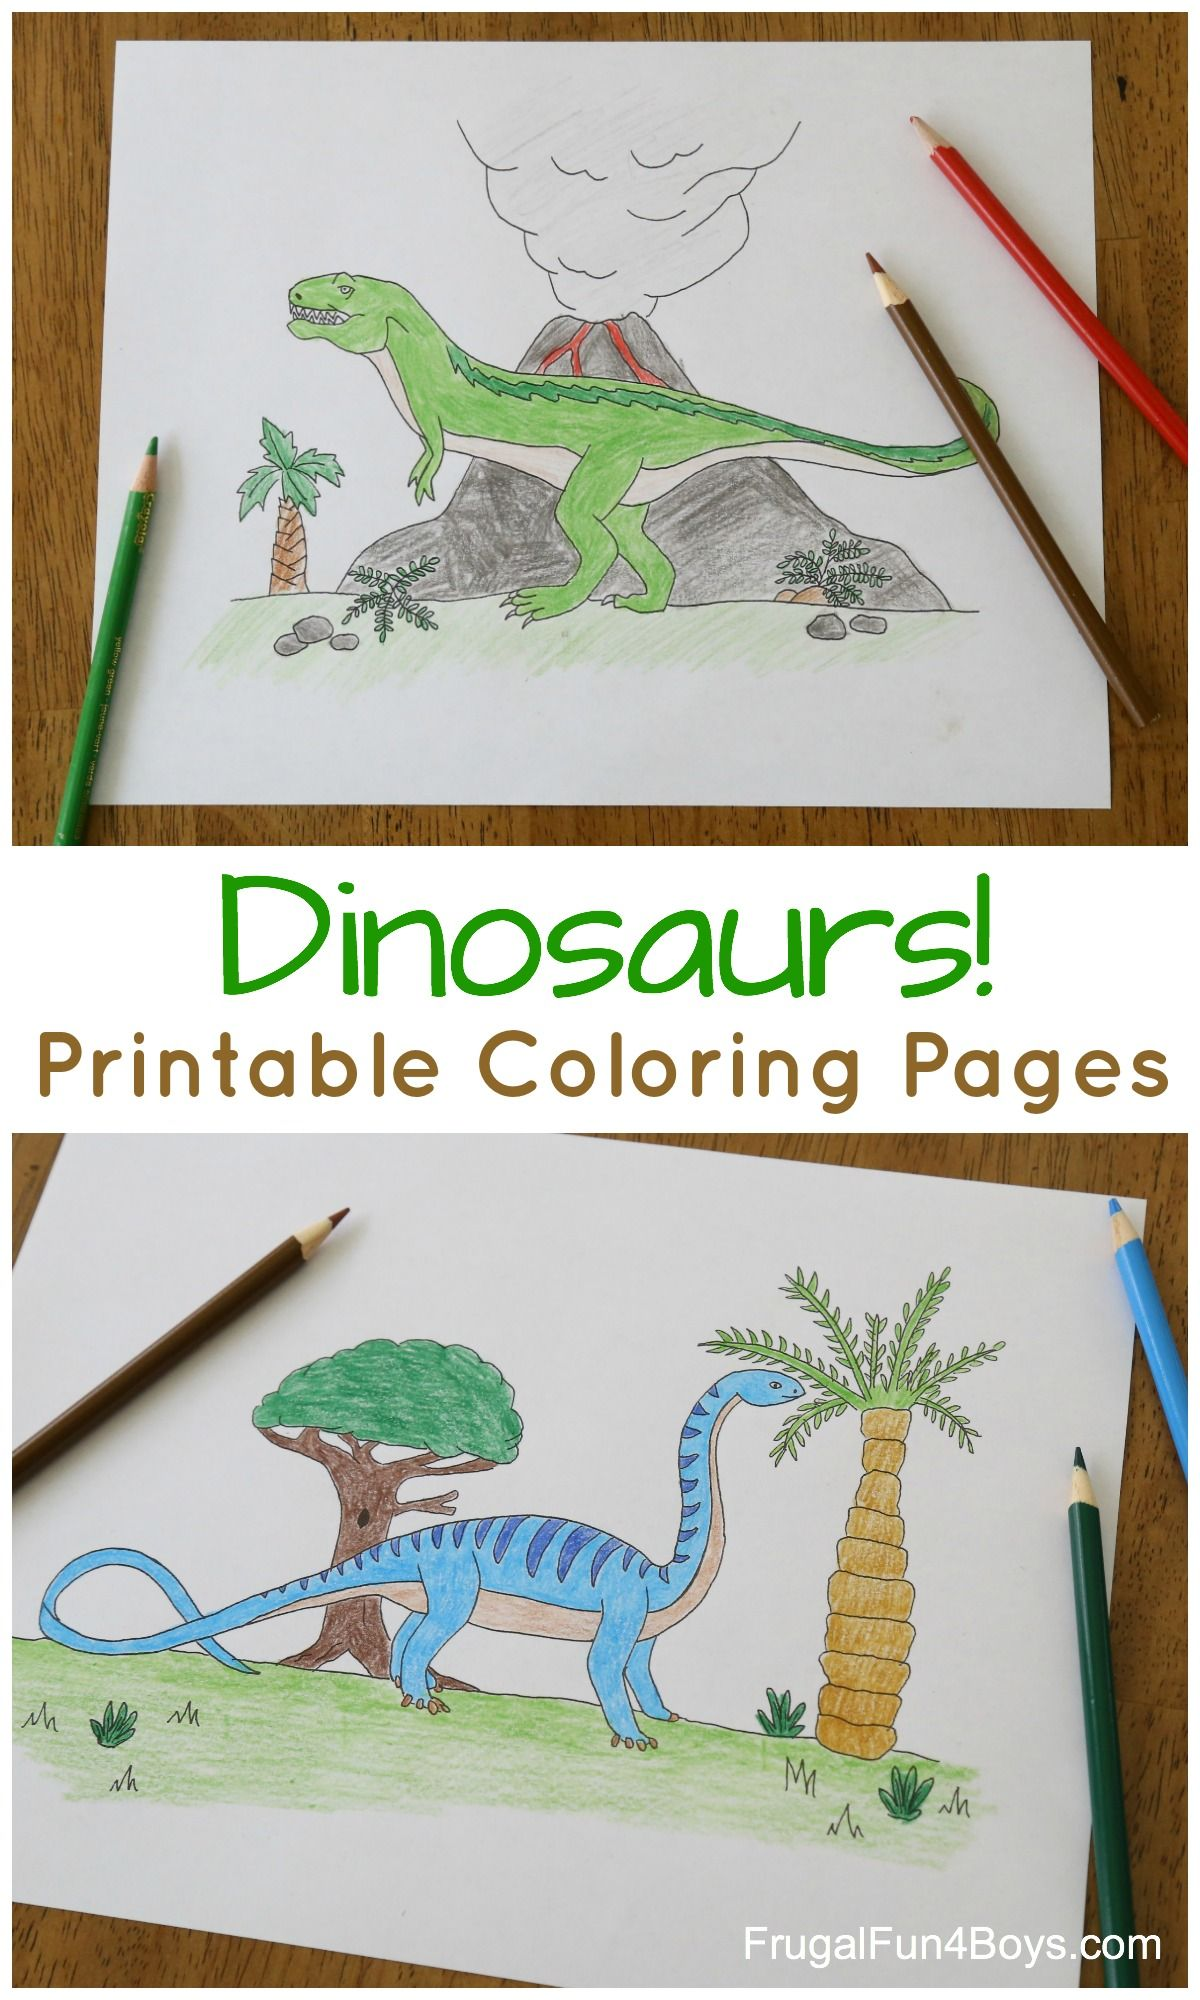 Printable Dinosaur Coloring Pages For Kids Frugal Fun For Boys And Girls Dinosaur Coloring Pages Dinosaur Coloring Dinosaur Printables [ 2000 x 1200 Pixel ]